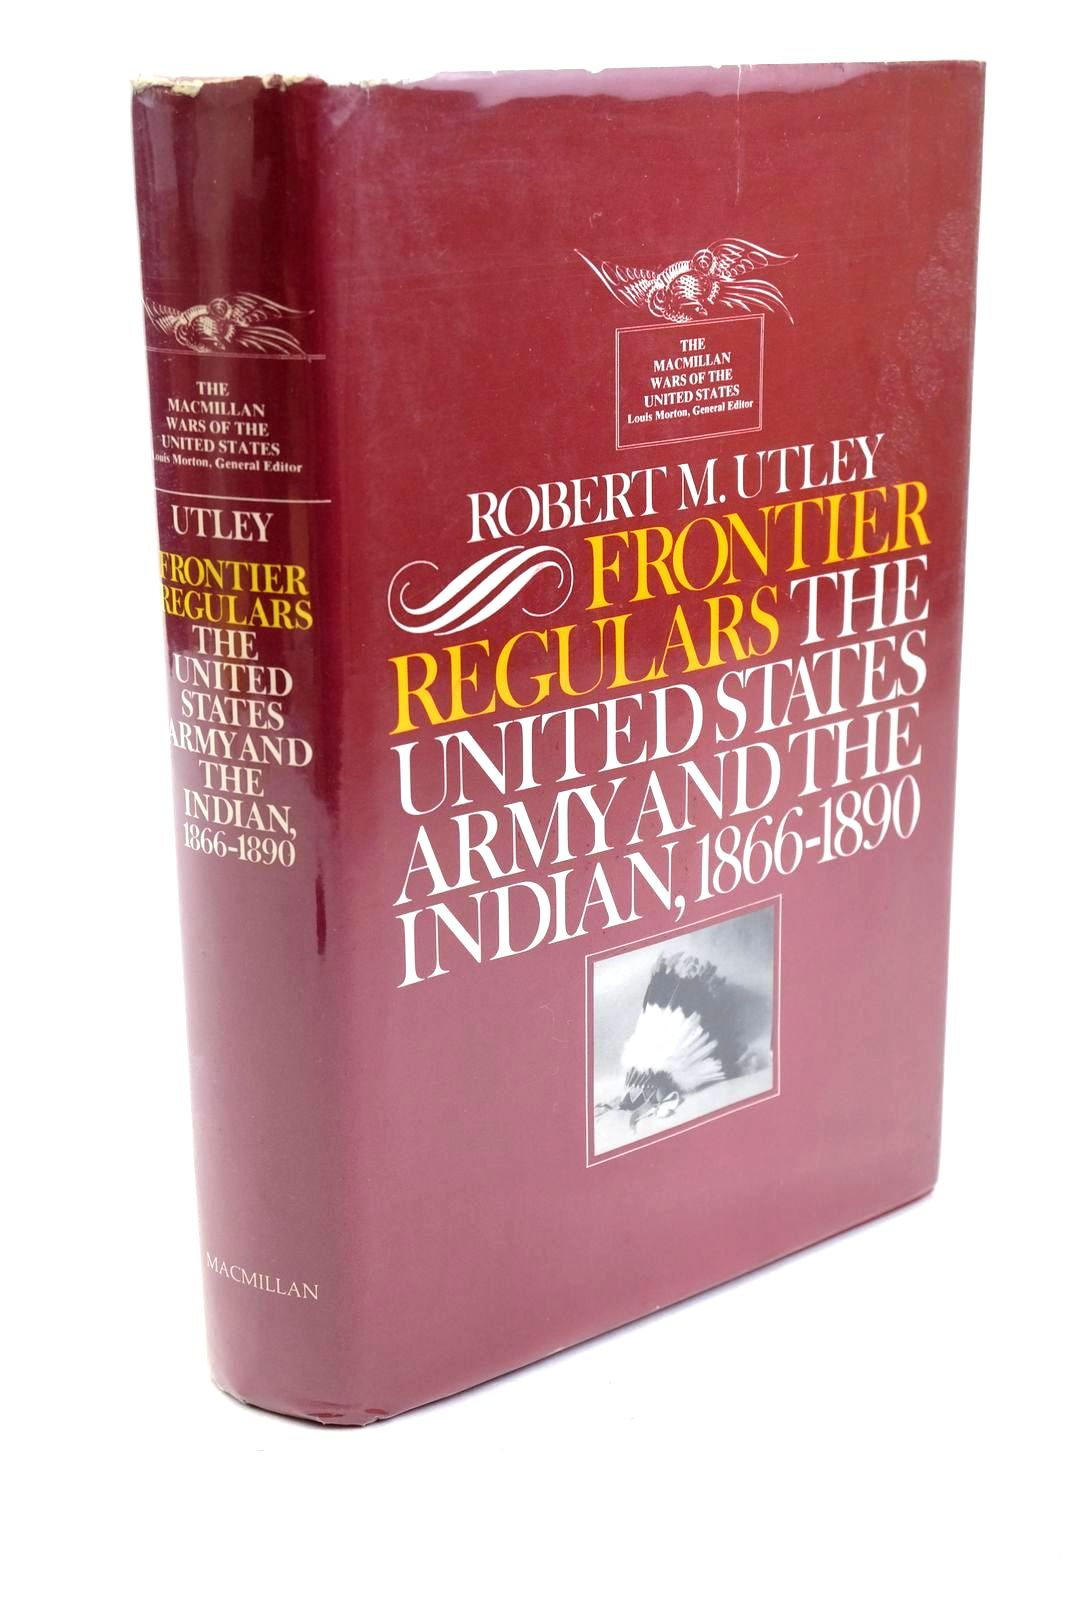 Photo of FRONTIER REGULARS: THE UNITED STATES ARMY AND THE INDIAN 1866-1891 written by Utley, Robert M. published by Macmillan Publishing Co. Inc. (STOCK CODE: 1320354)  for sale by Stella & Rose's Books